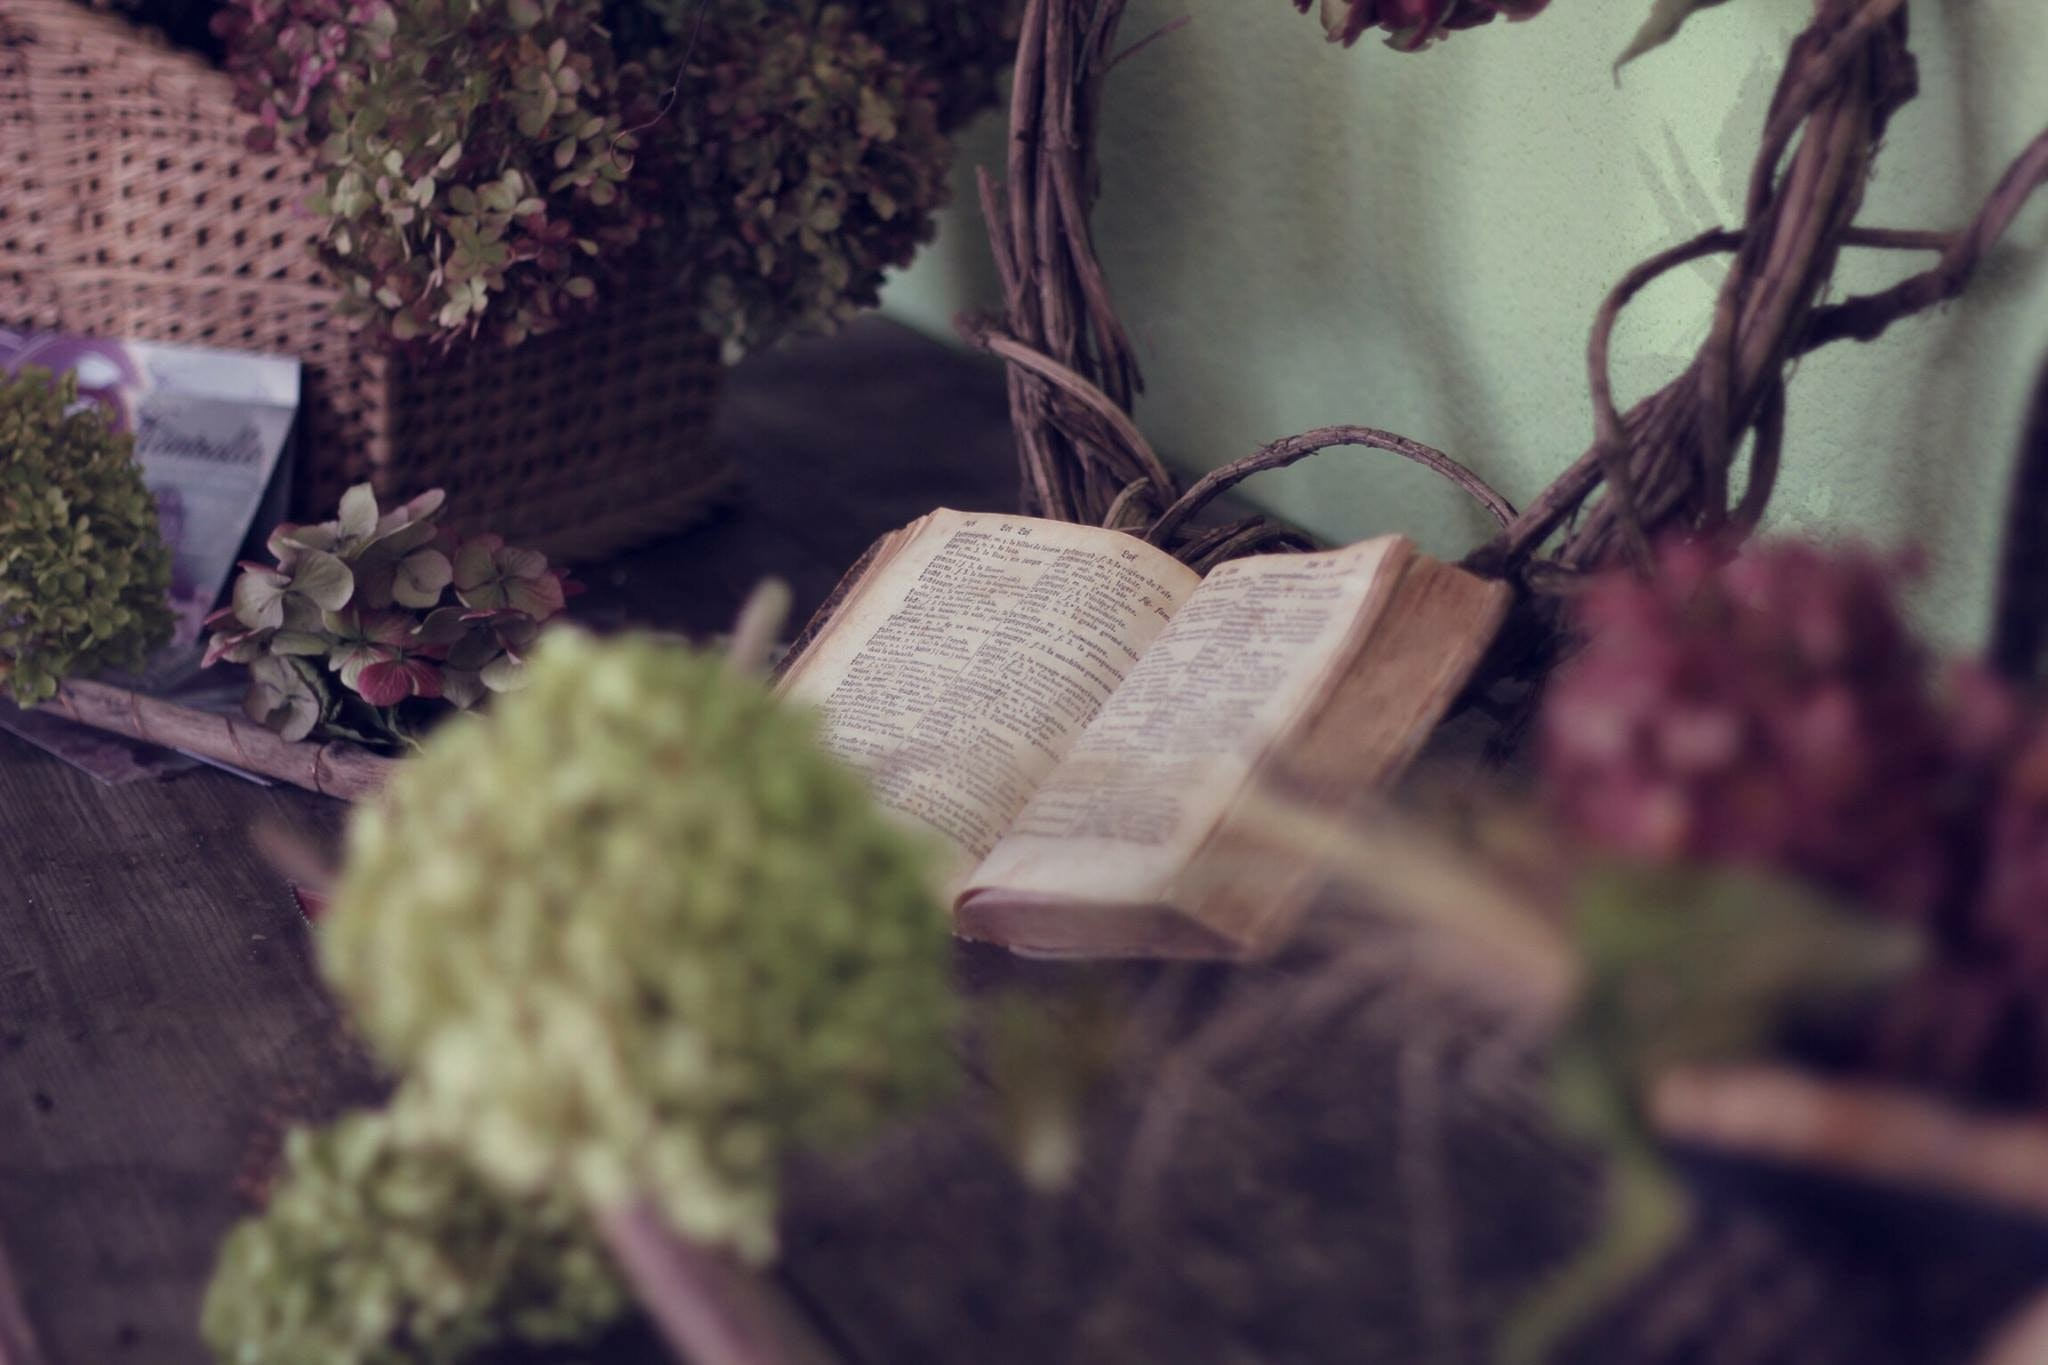 An open old book surrounded by hydrangea flowers in various colors